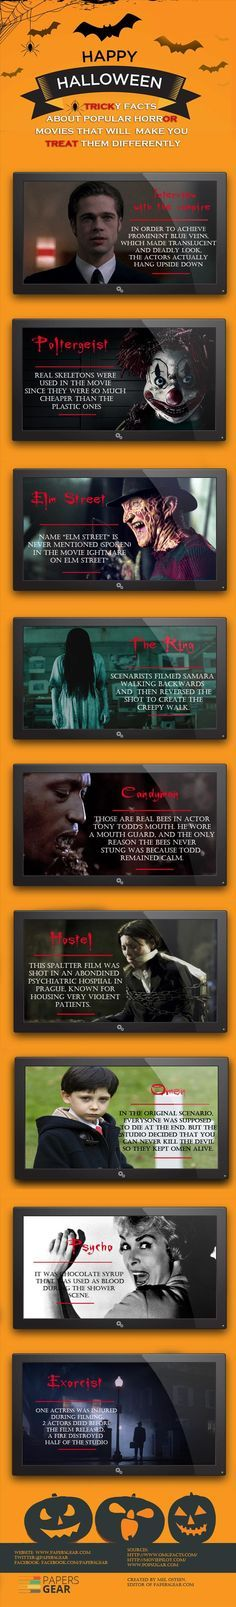 Fun Horror Movie Facts I Bet You Didn't Know - A little hard to read but all pretty interesting